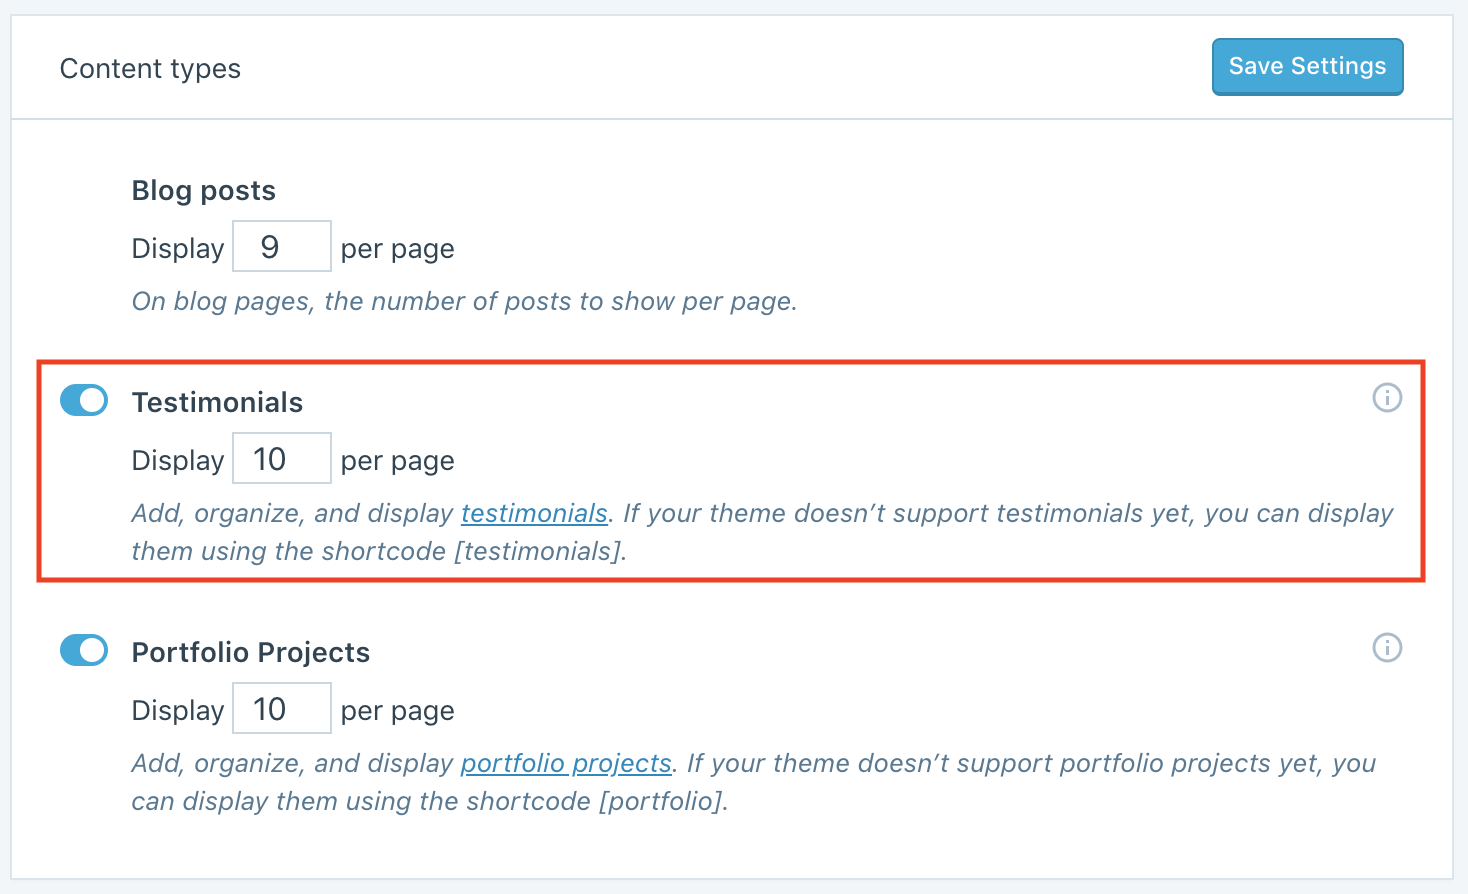 The Testimonials option is marked in a red box